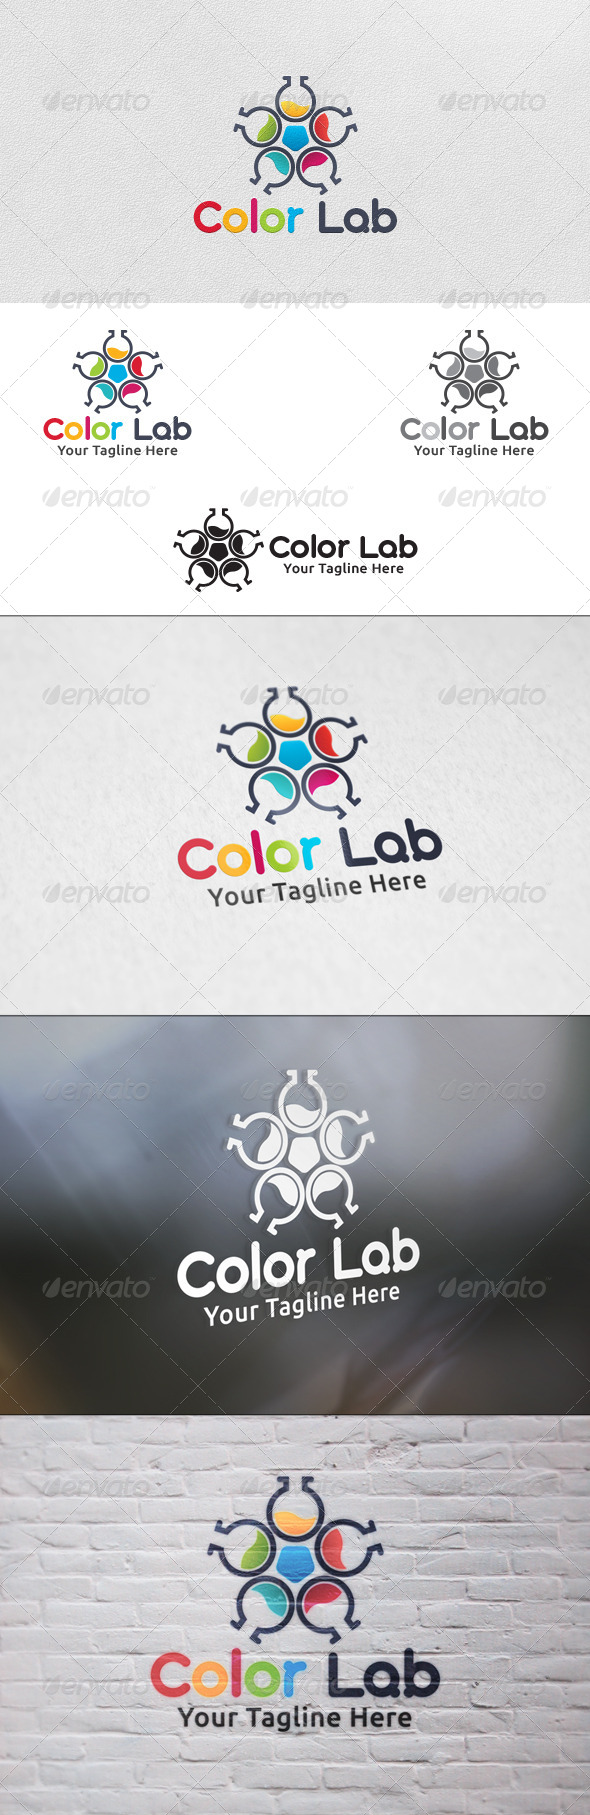 GraphicRiver Color Lab Logo Template 5872470